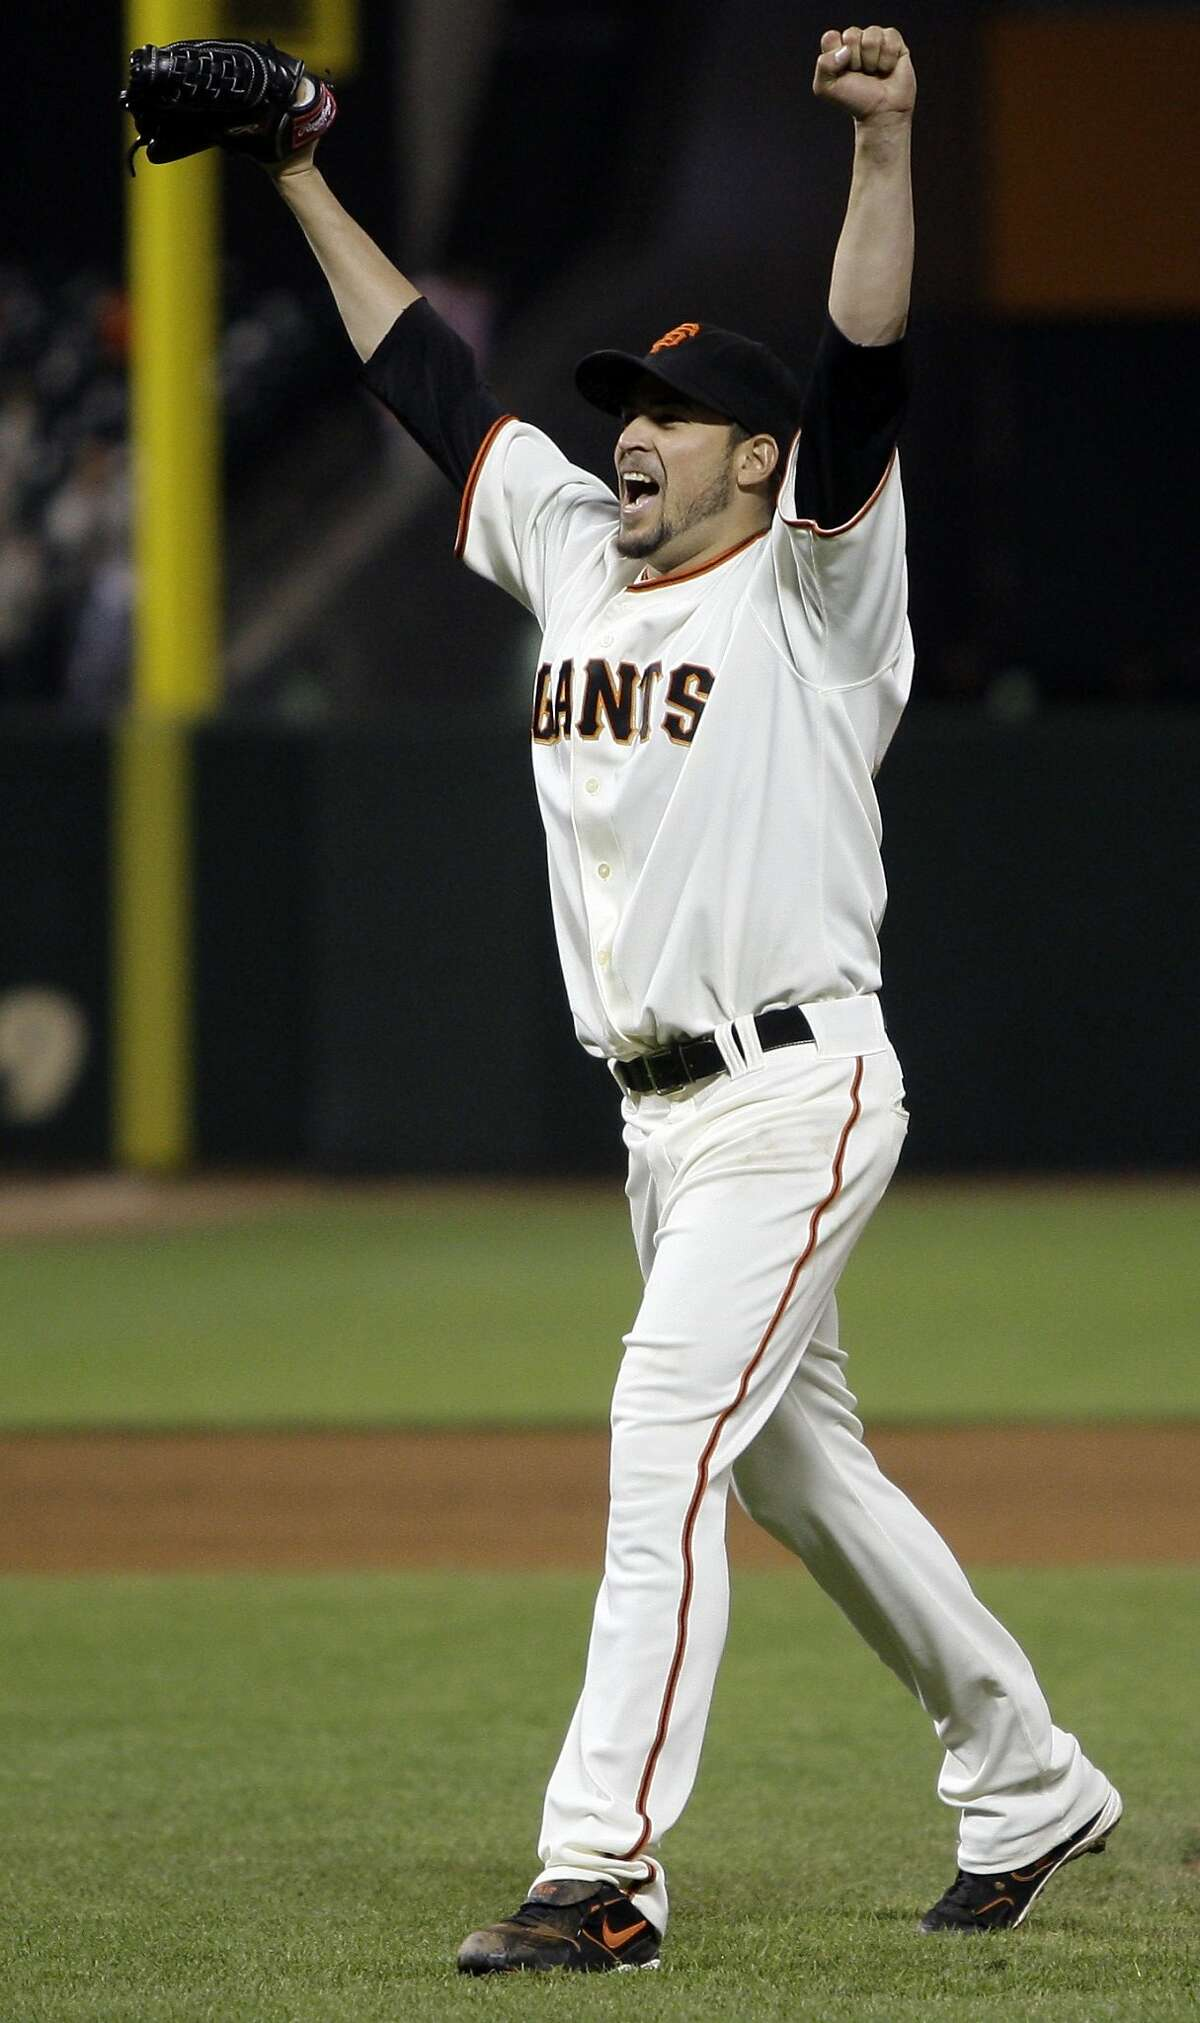 San Francisco Giants' Jonathan Sanchez celebrates at the end of a baseball game after pitching a no-hitter against the San Diego Padres Friday, July 10, 2009, in San Francisco. Sanchez pitched the majors' first no-hitter this season Friday night, dominating the San Diego Padres with an array of pitches in the San Francisco Giants' 8-0 victory. Sanchez finished with 11 strikeouts and no walks. (AP Photo/Ben Margot)